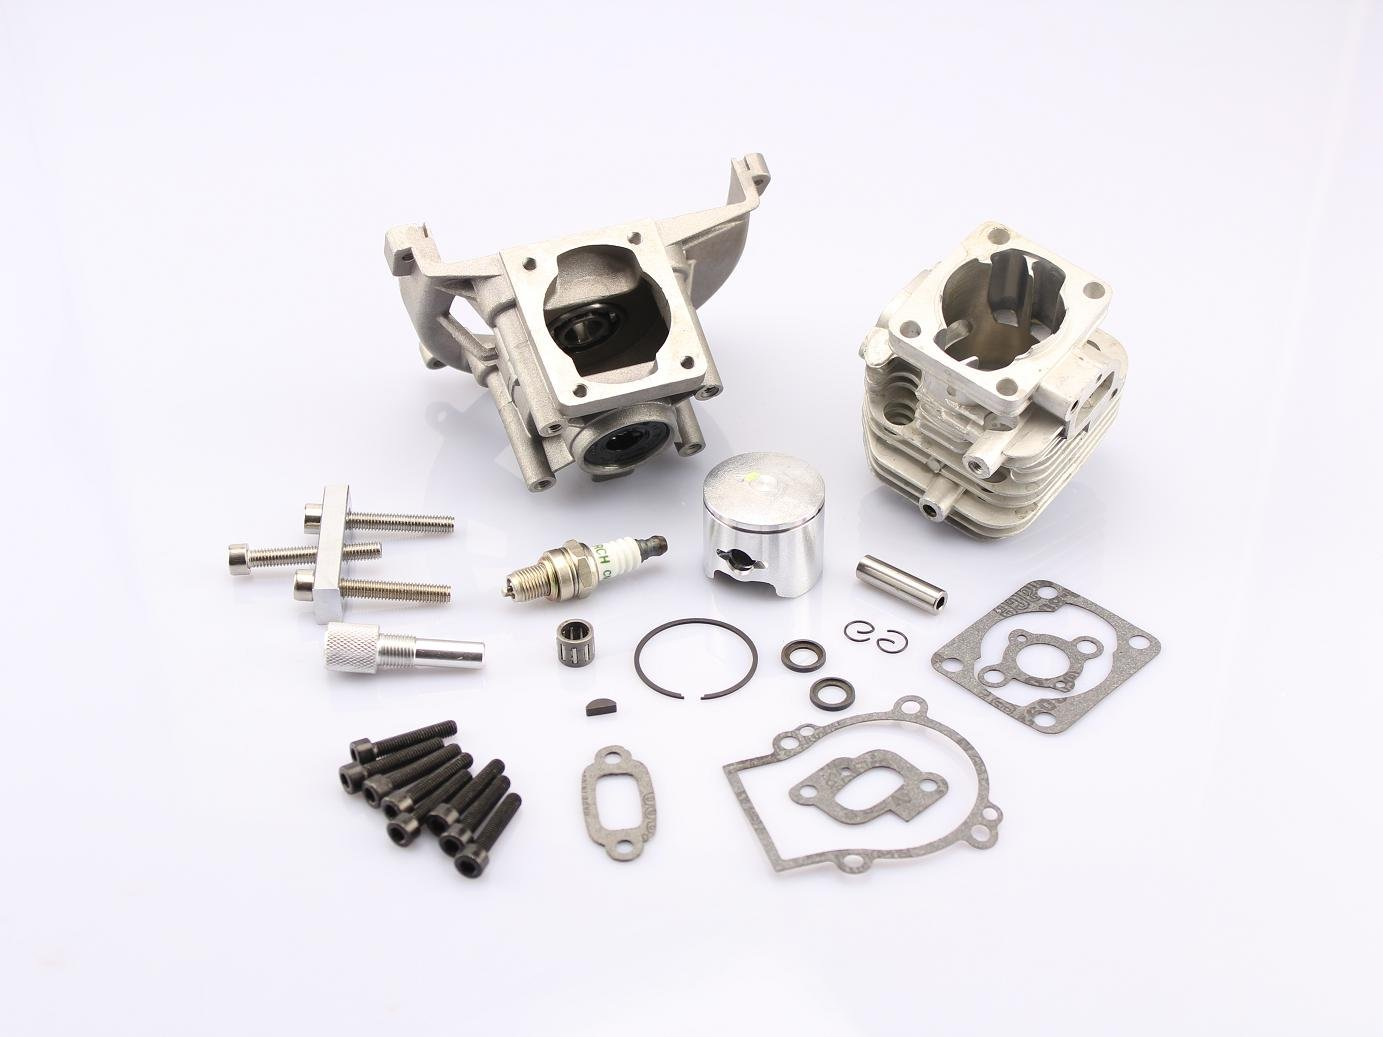 29CC four-point fixed engine parts kit for 1/5 baja HPI KM 5B 5T 5SC rc car jiangdong engine parts for tractor the set of fuel pump repair kit for engine jd495